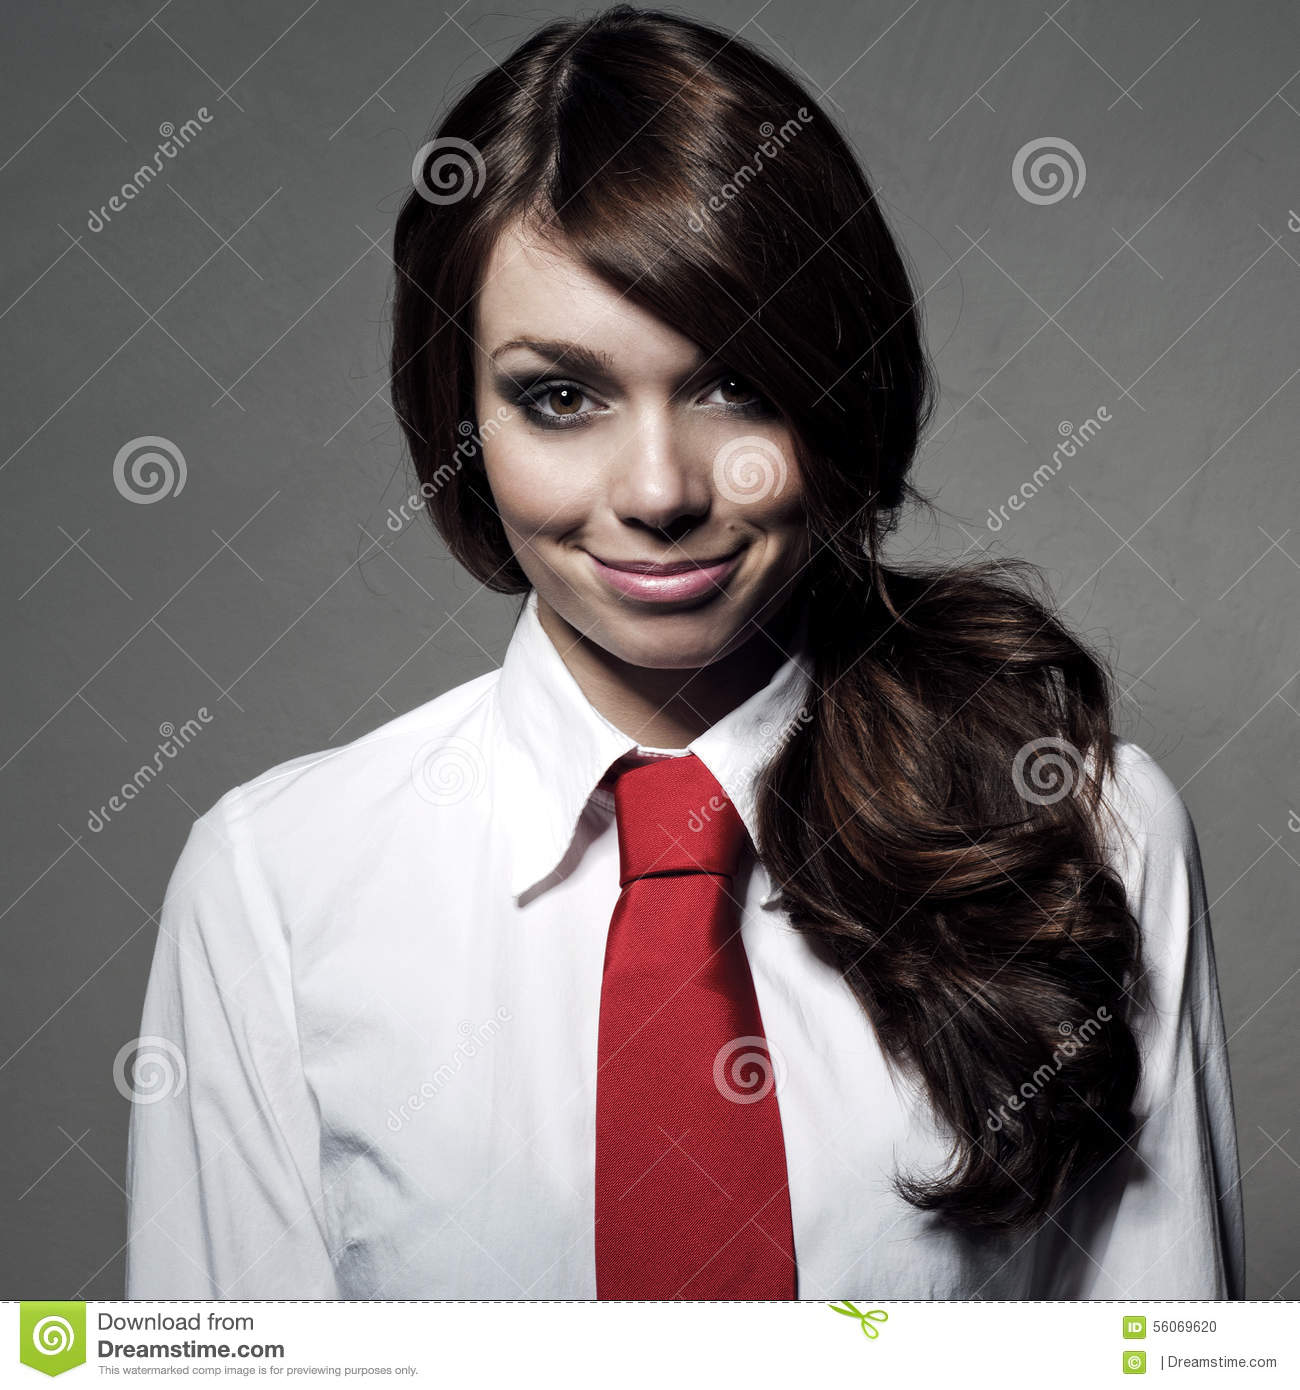 The Girl Is Wearing A White Shirt And Red Tie Stock Photo ...